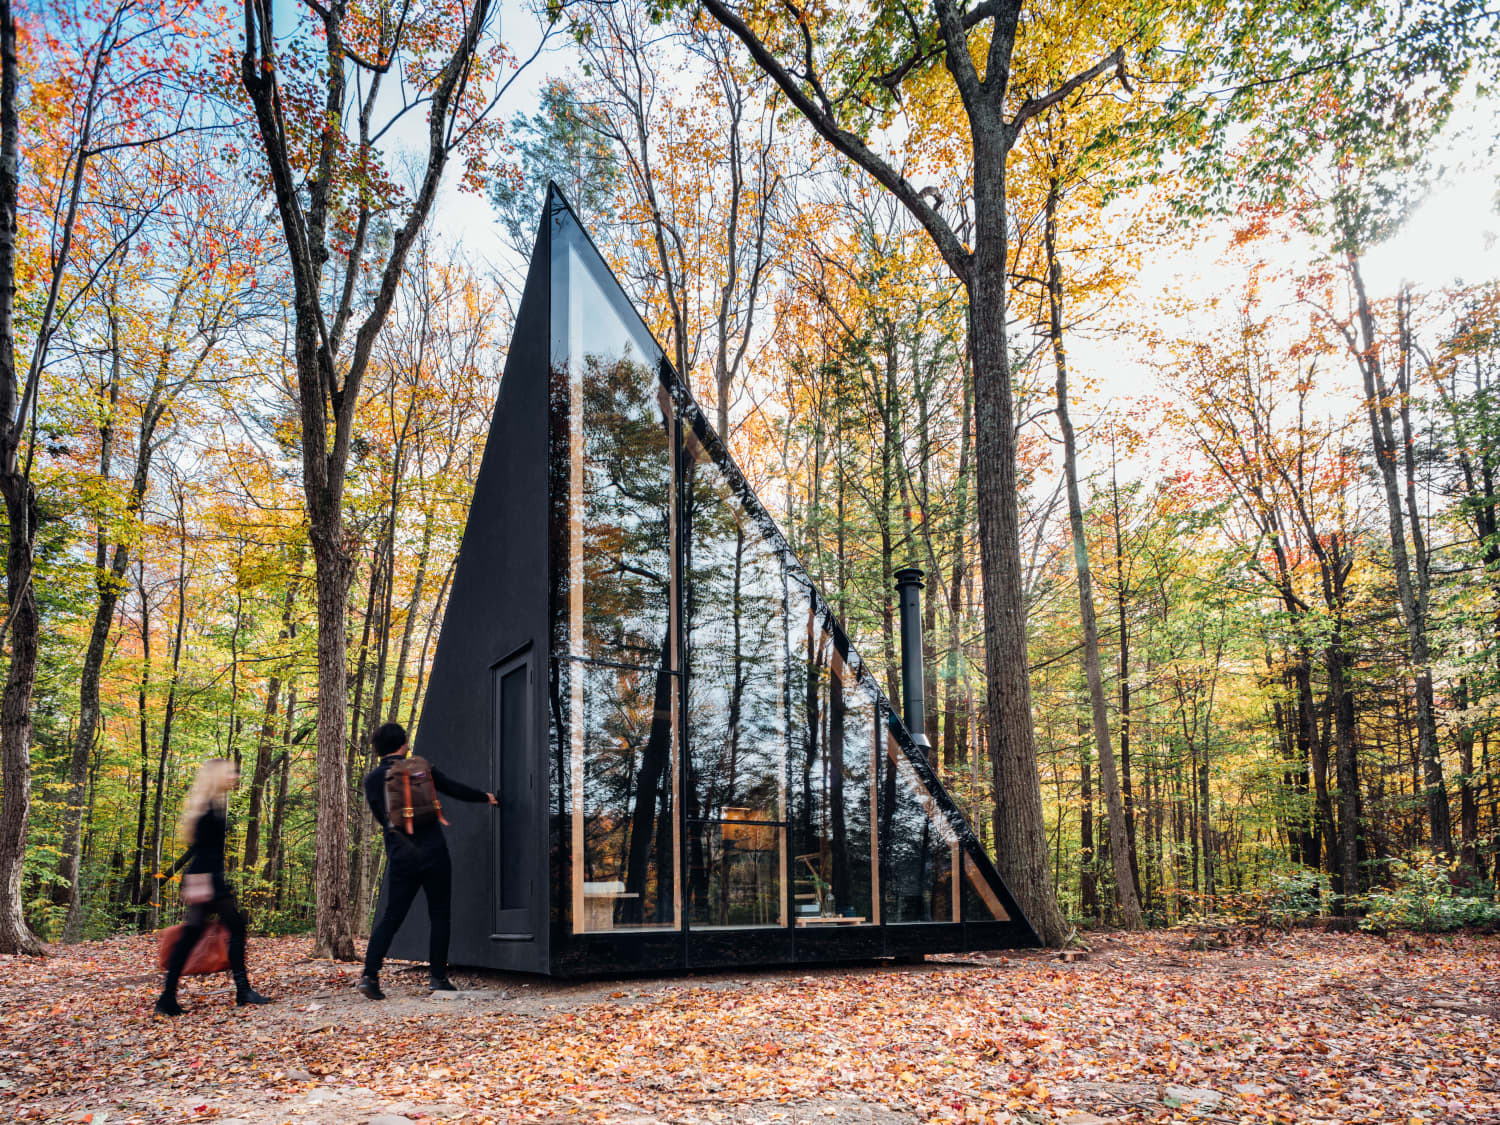 This 182 Square Foot Tiny Cabin Is BIG on Style